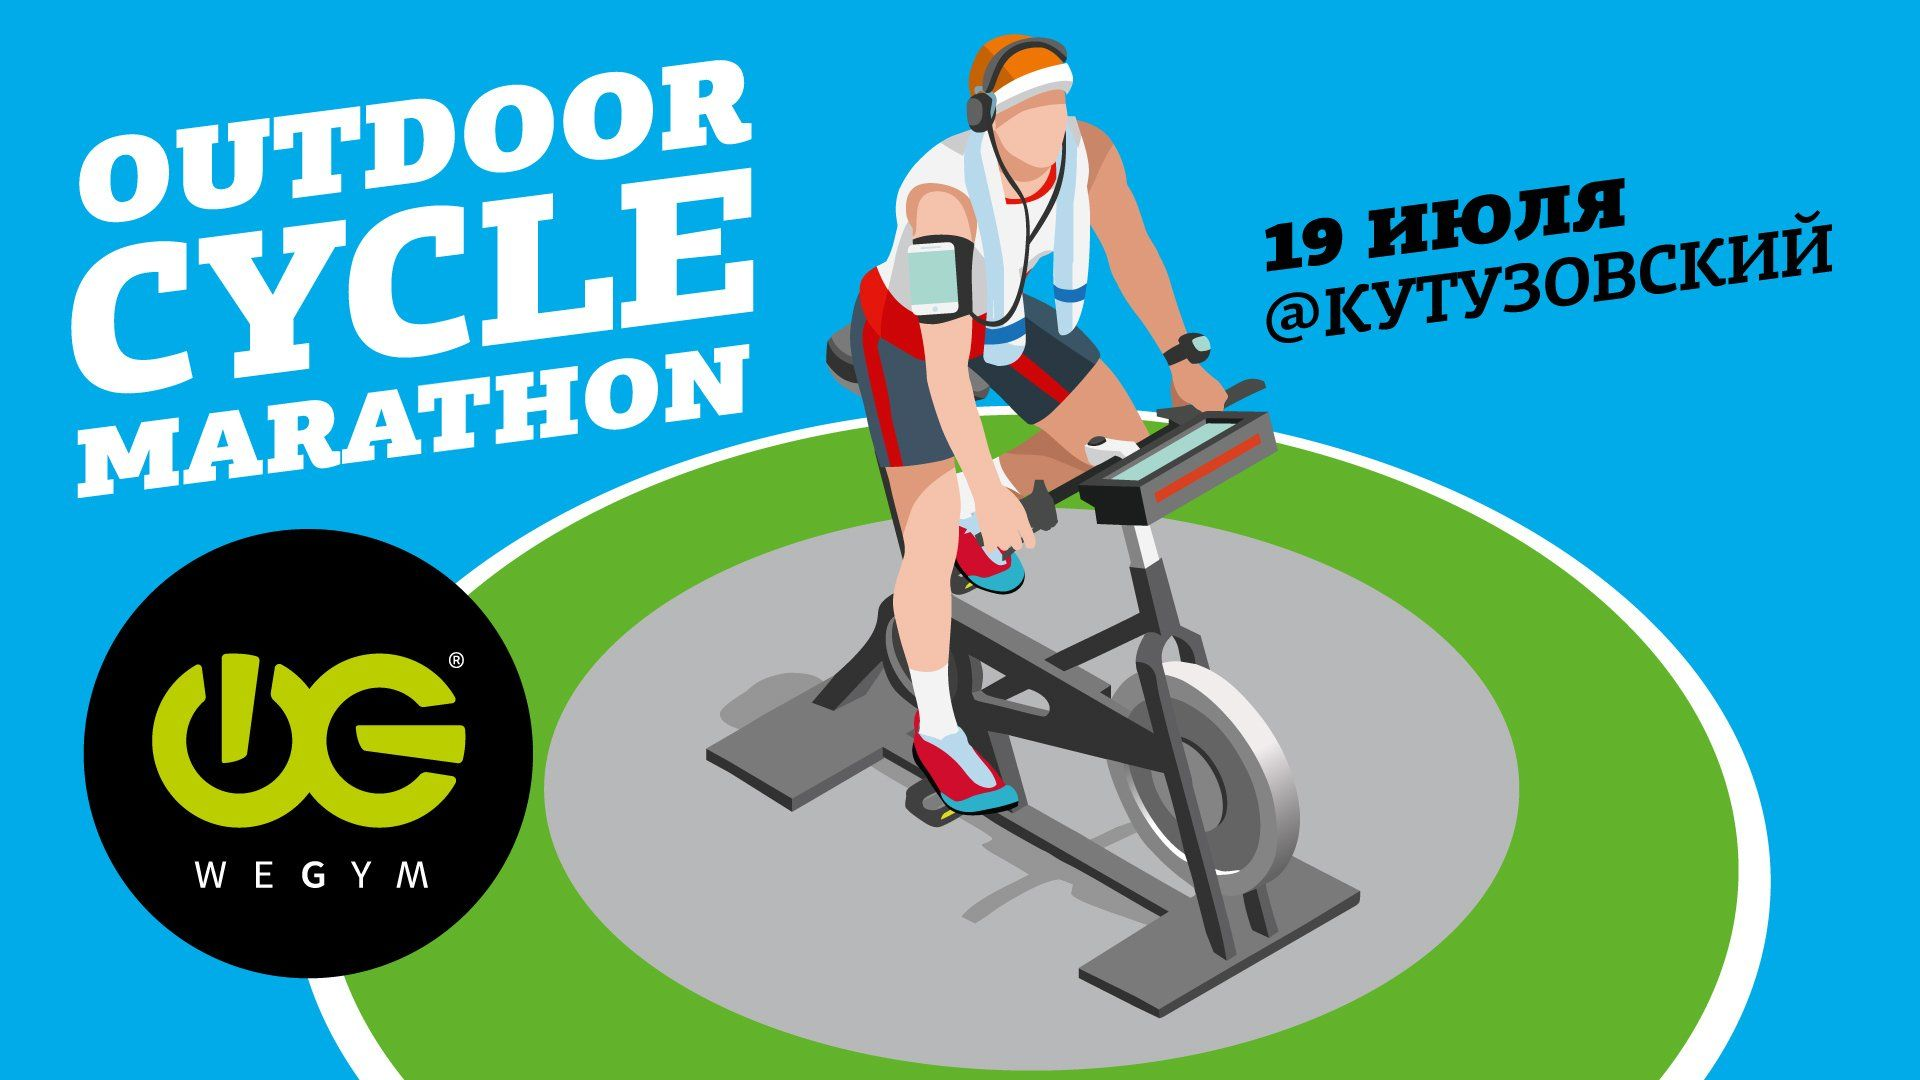 Outdoor Cycle Marathon